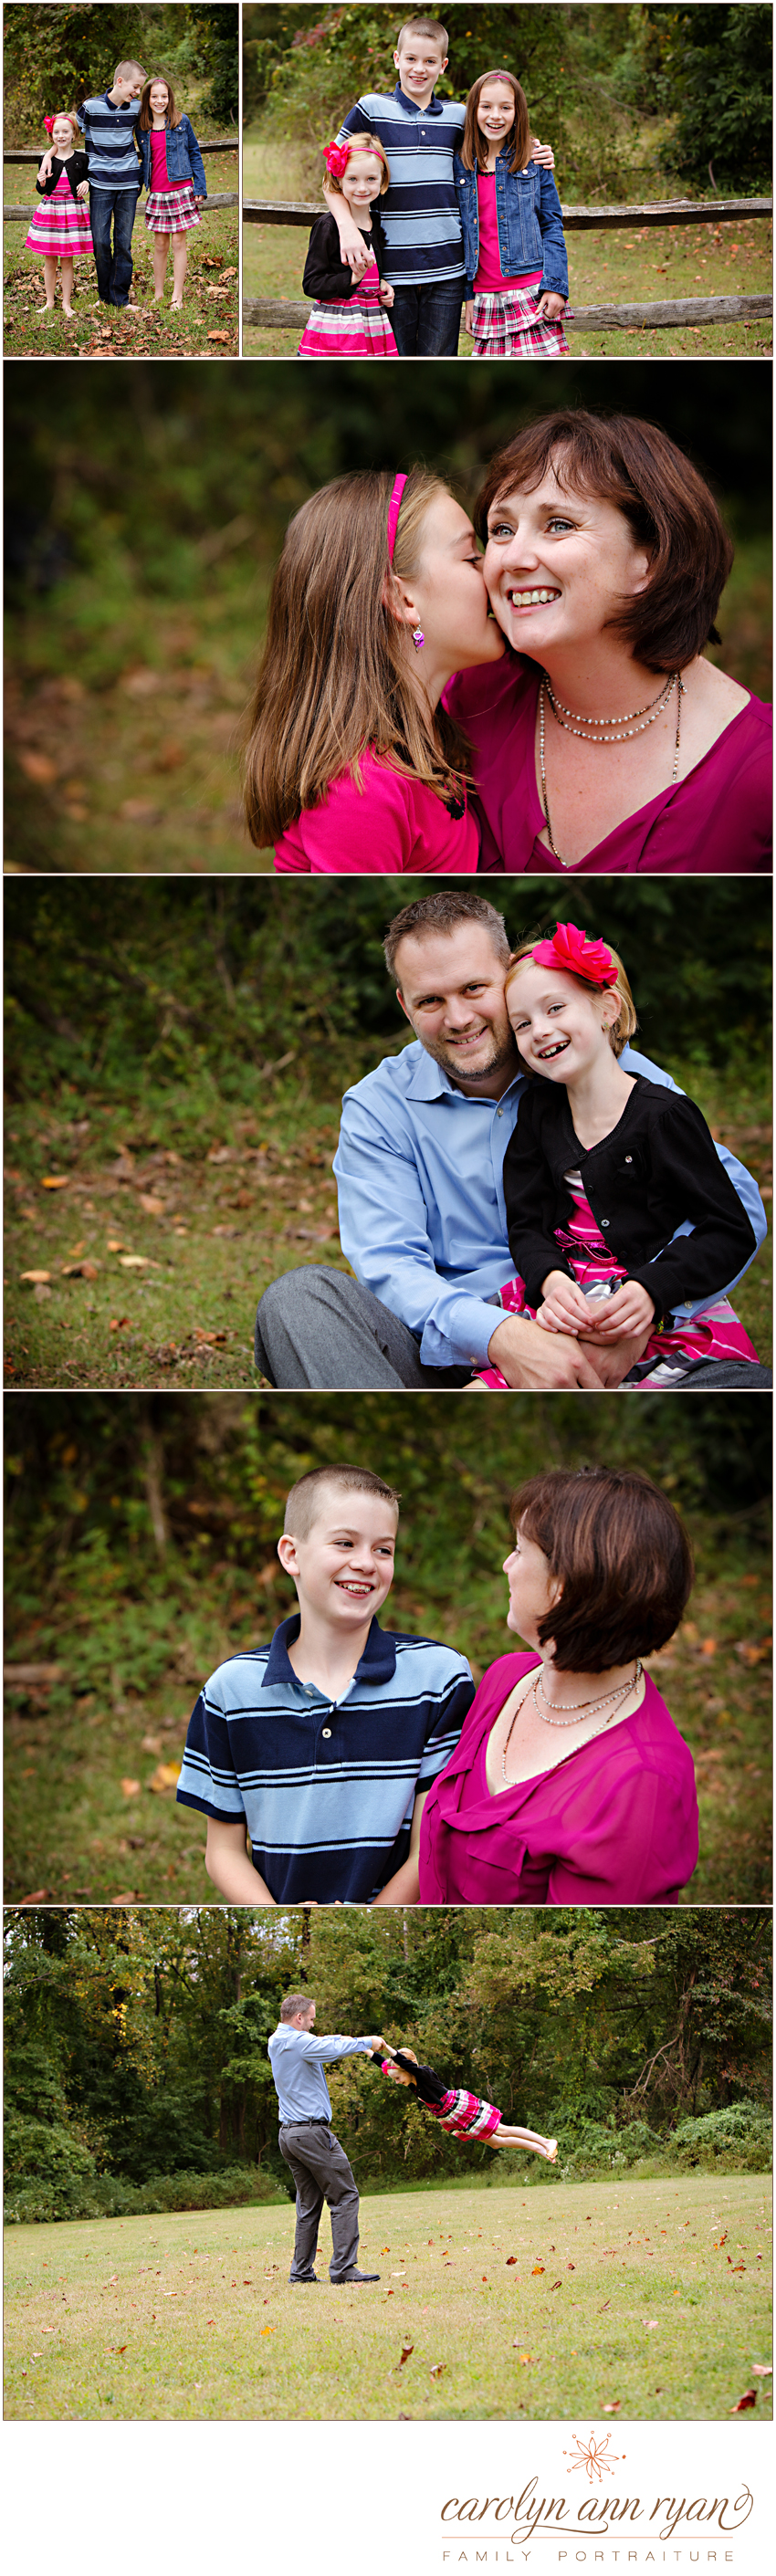 Scotch Plains Family Portrait Session 3